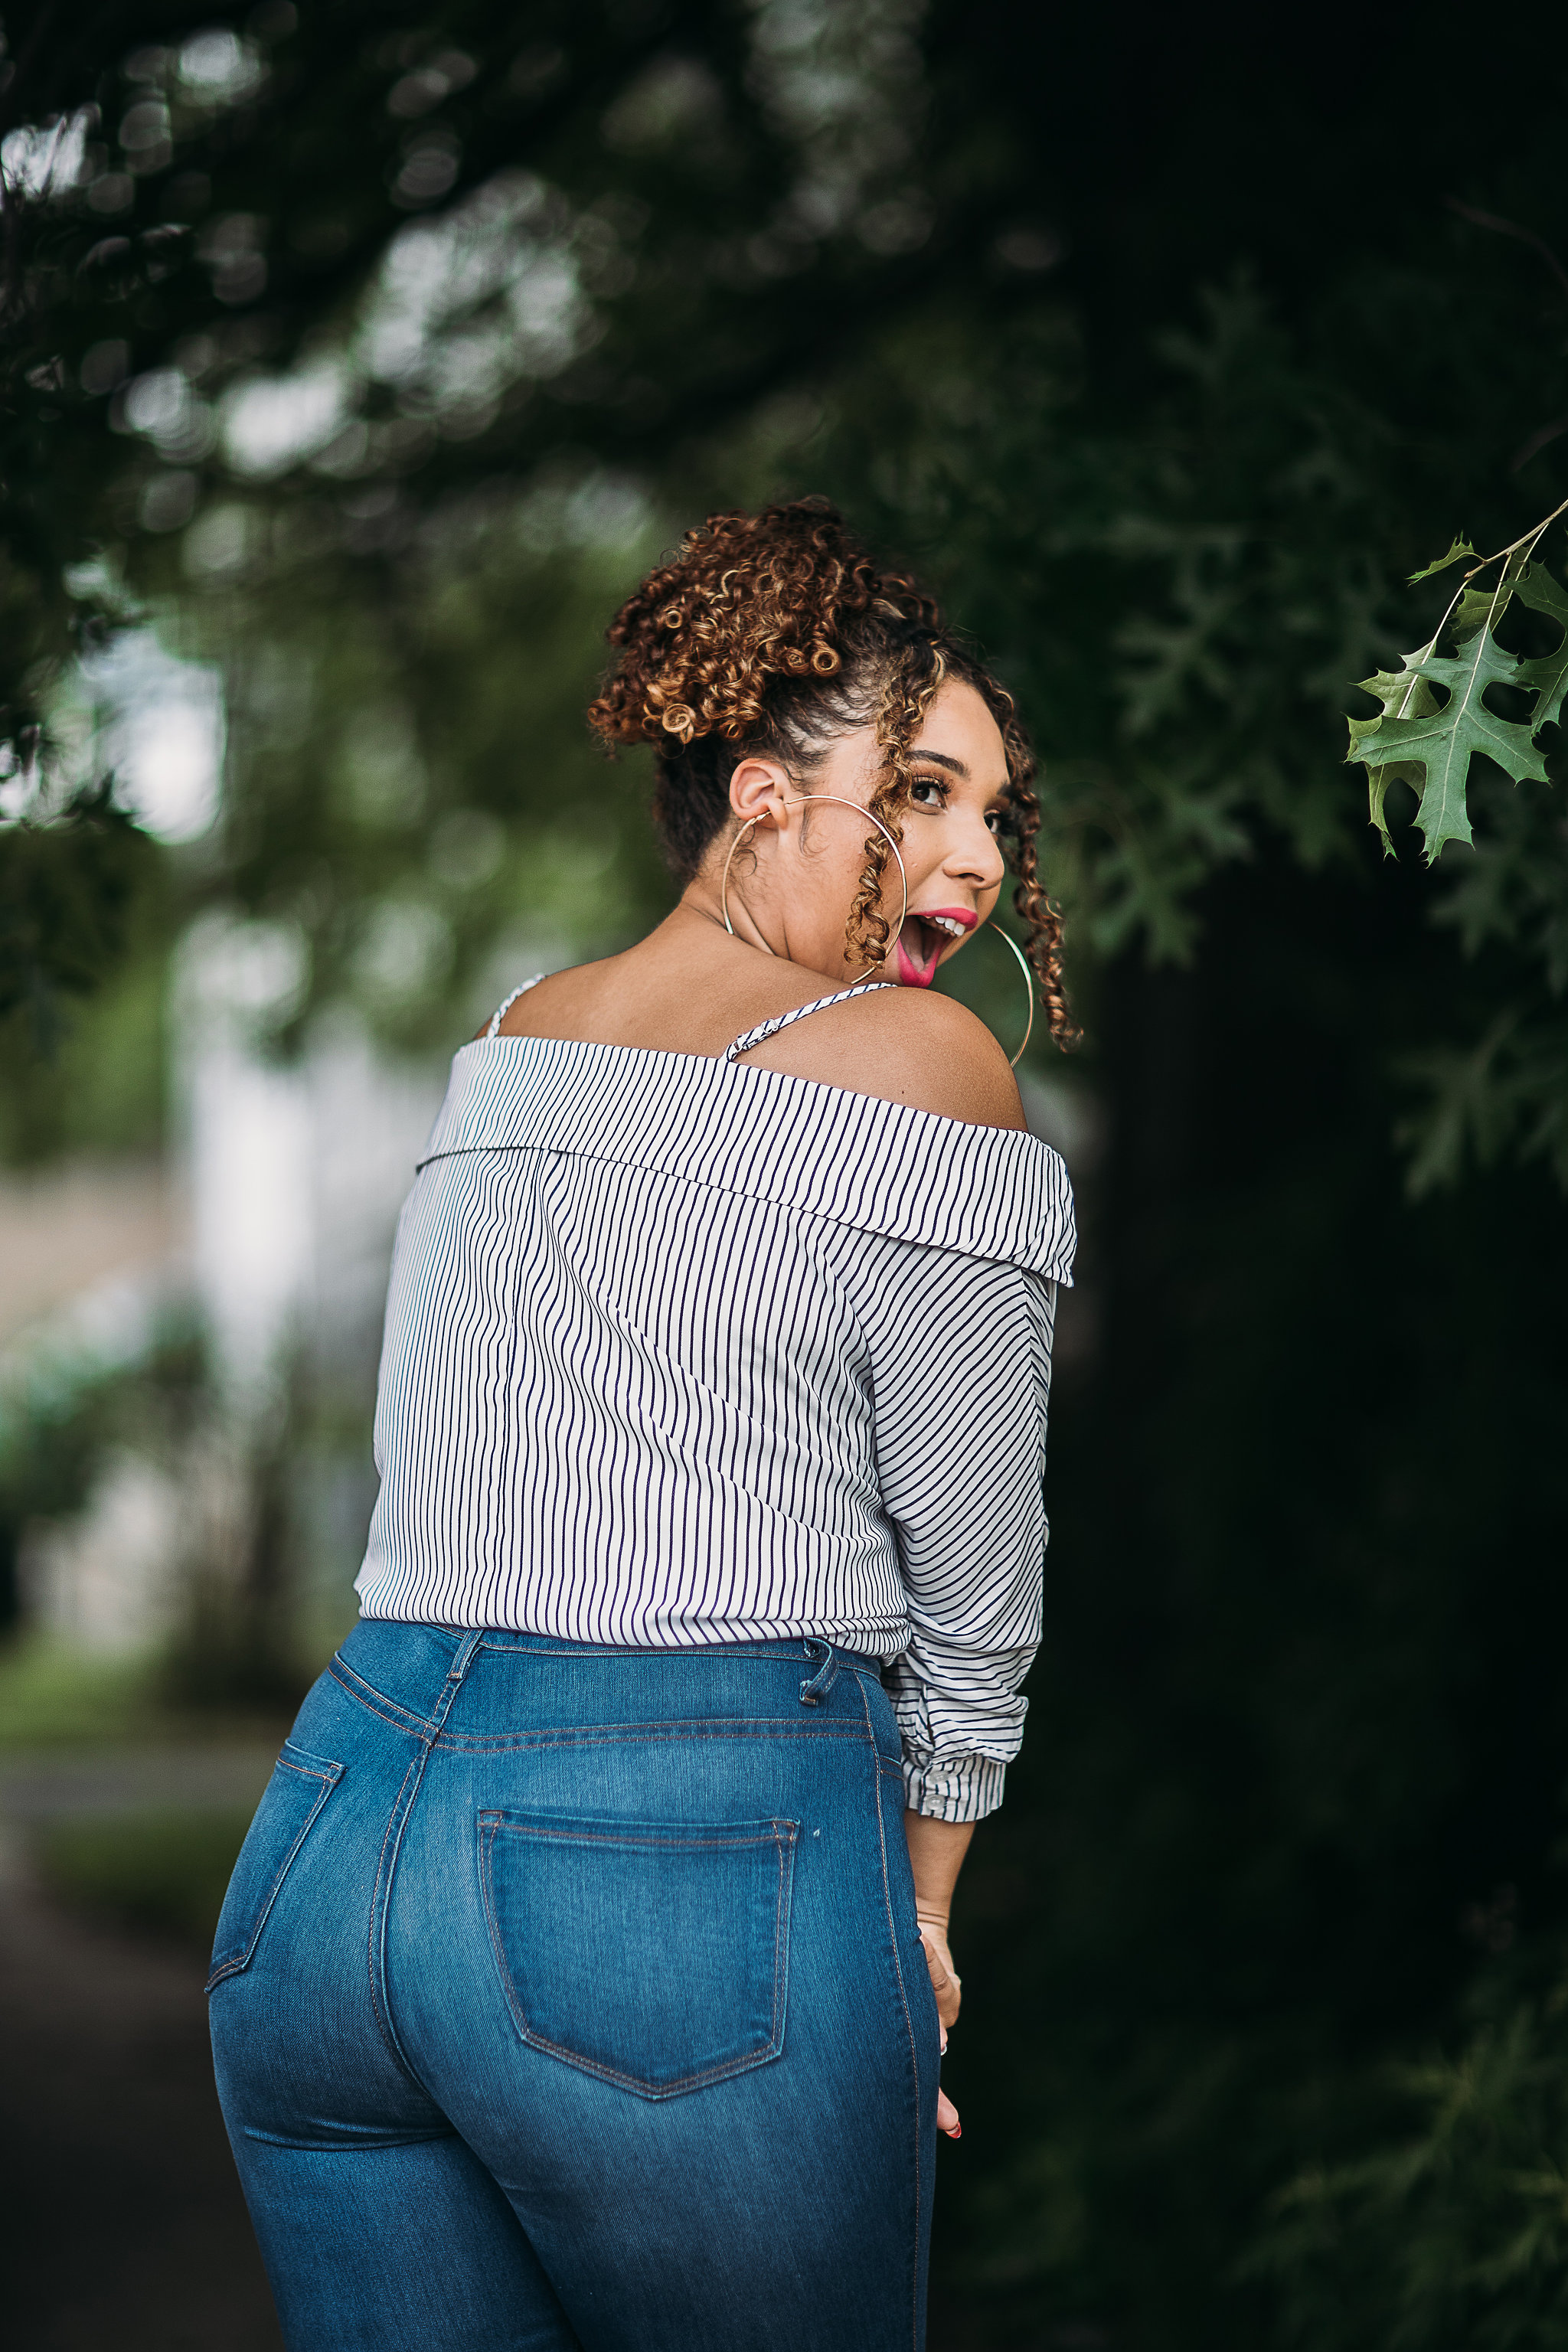 Literally the face I made when I tried these jeans on for the first time!